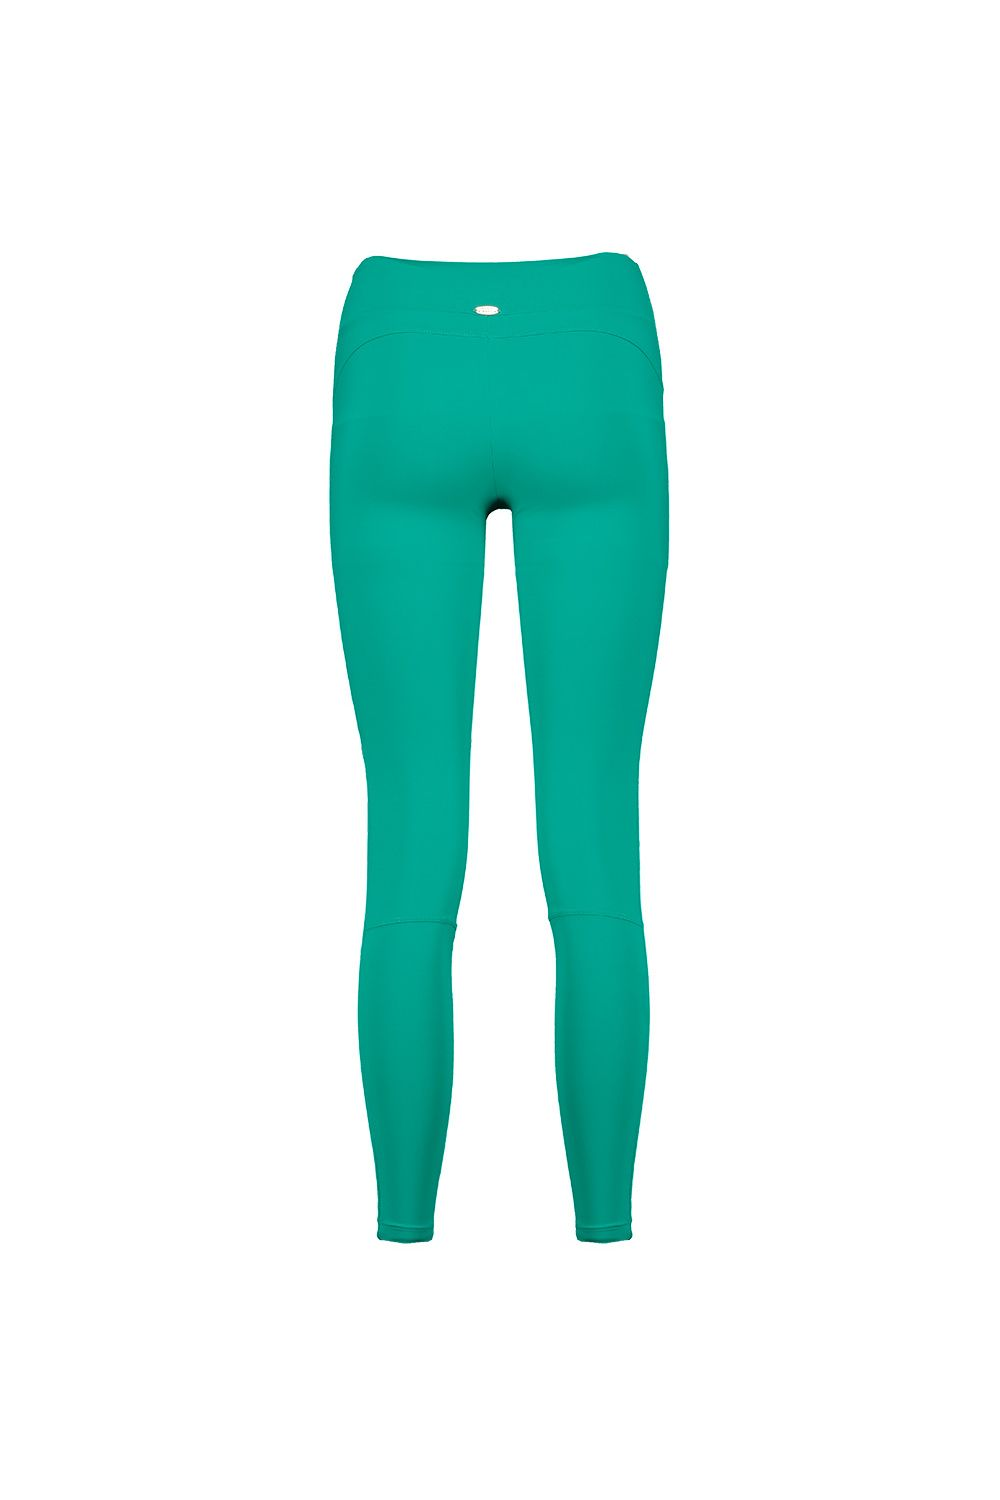 Leggings-Fitness-Transport-Track--5-